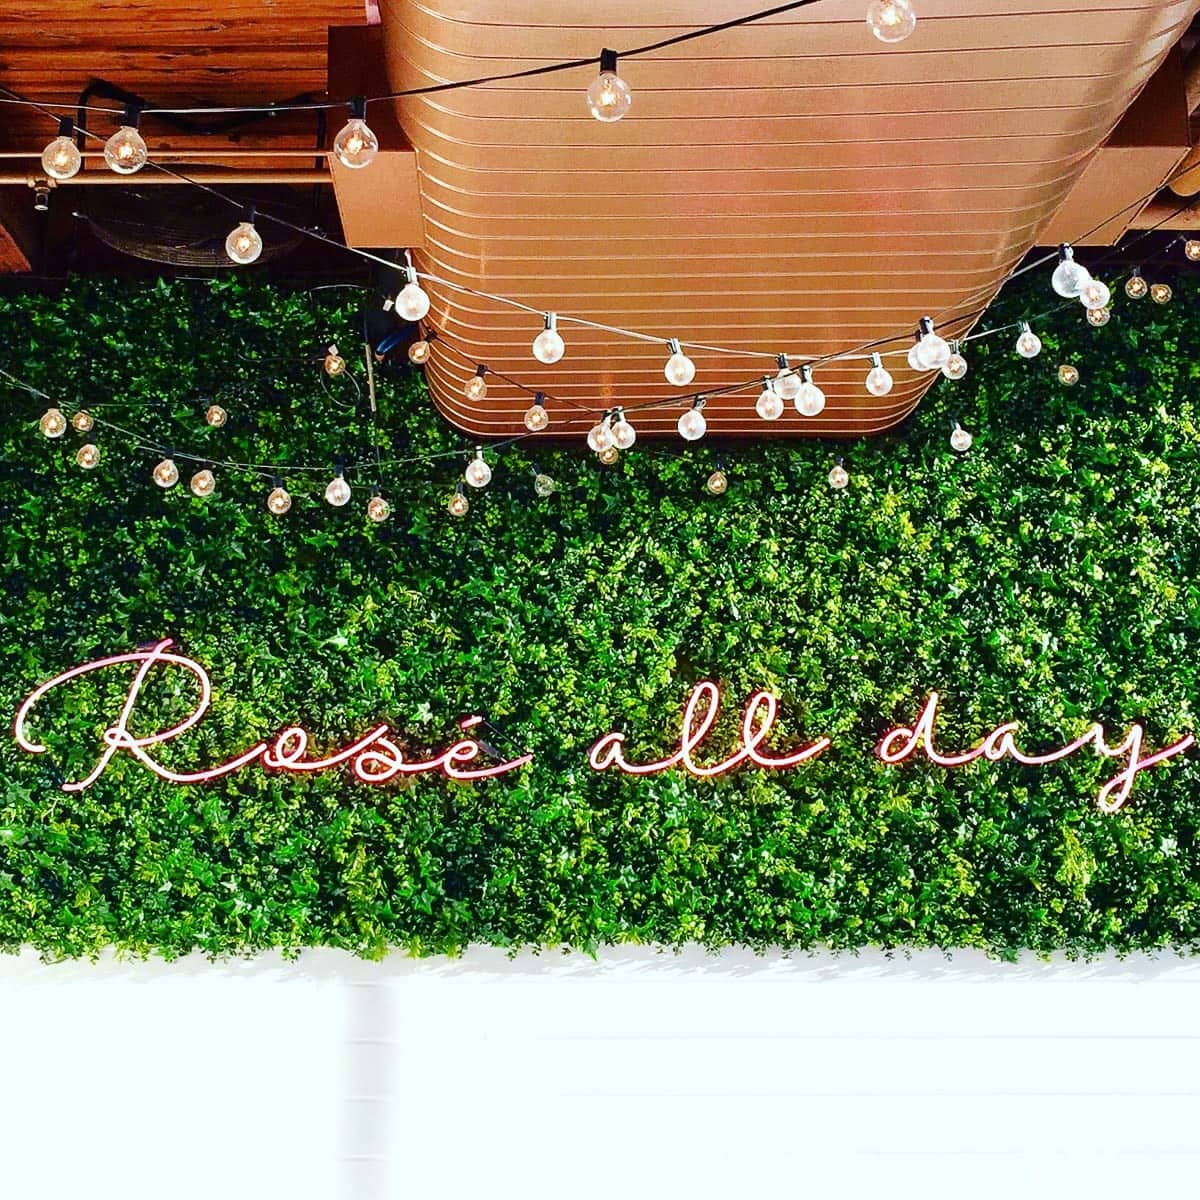 The rose all day sign at The Hampton Social in chicago is a great photo spot